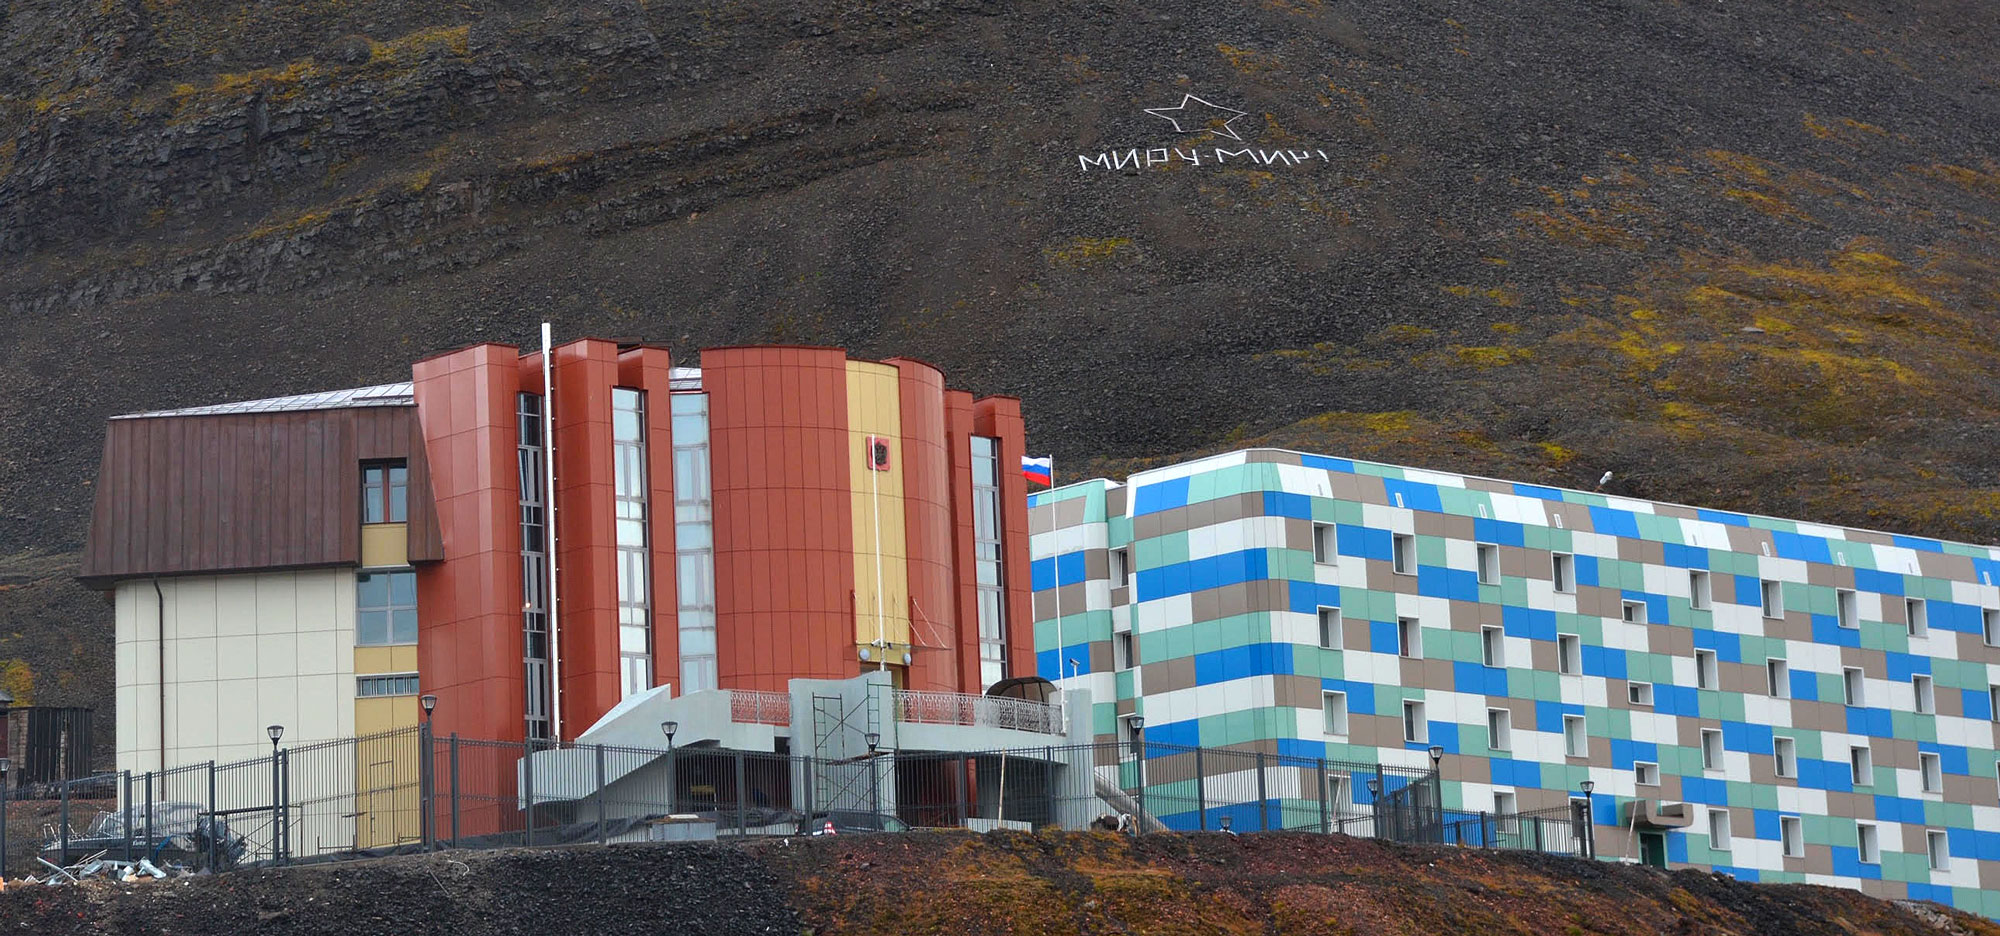 An apparently coordinated Russian response challenges Norway's position in Svalbard - ArcticToday